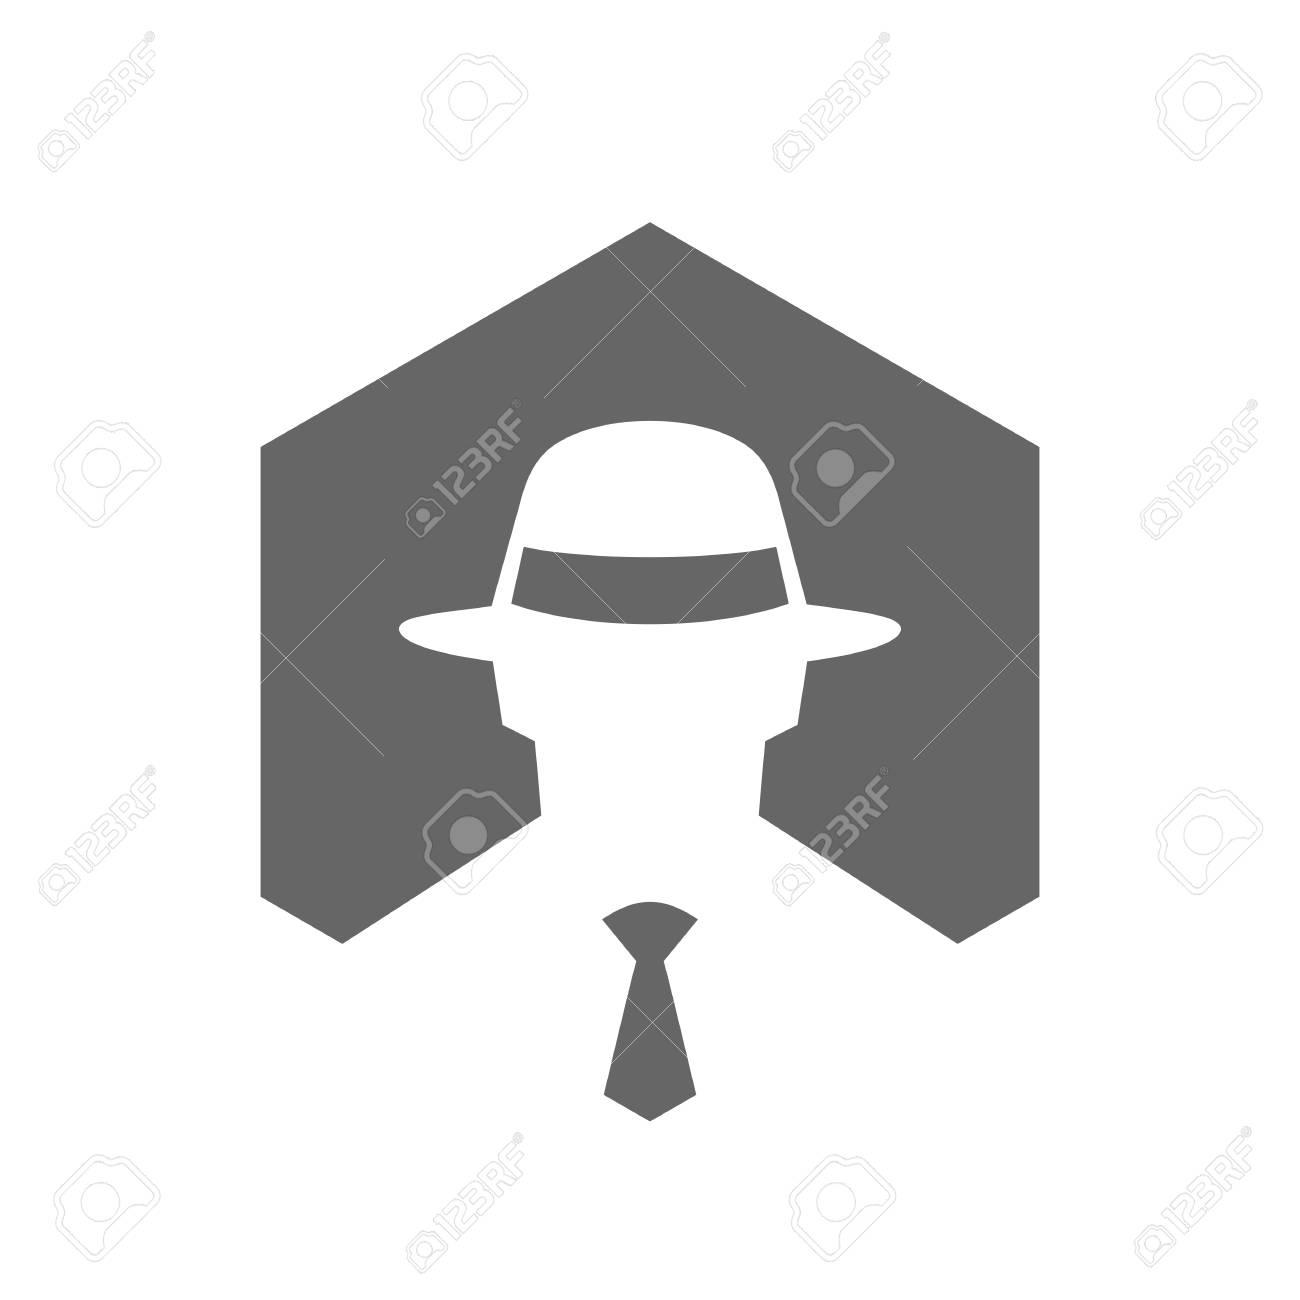 603069ed Hexagonal Incognito Icon, Hacker Logo Design, Man With Fedora Hat Logo,  Secret Agent